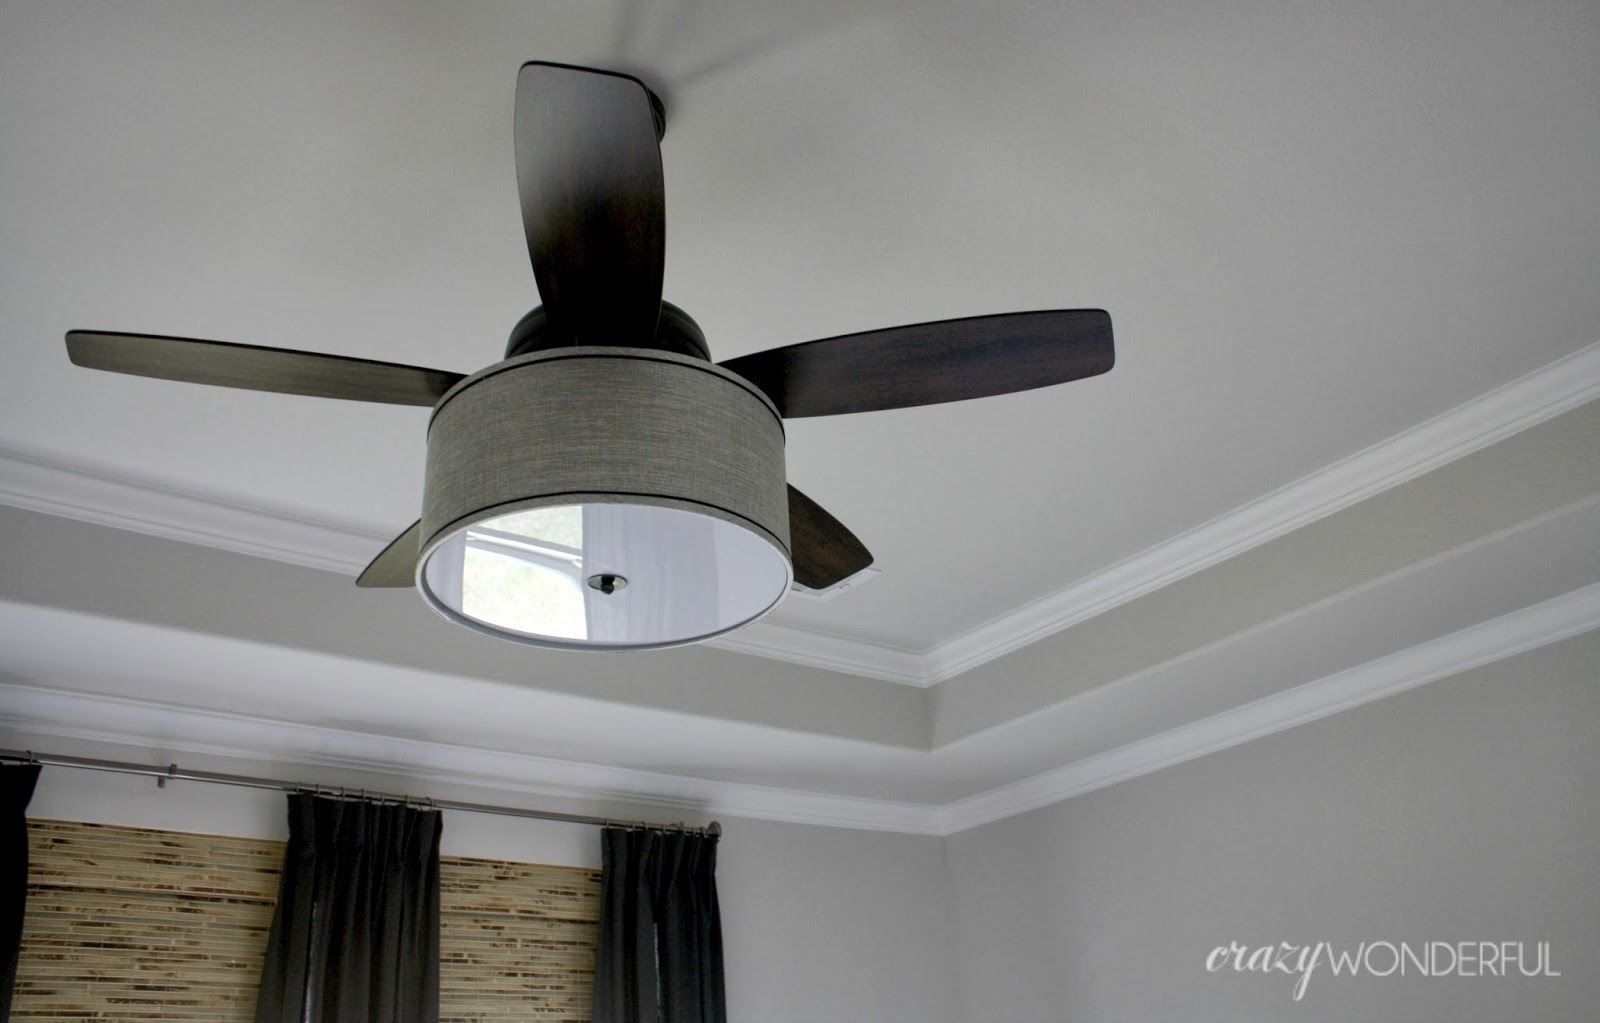 High Quality DIY Drum Shade Ceiling Fan